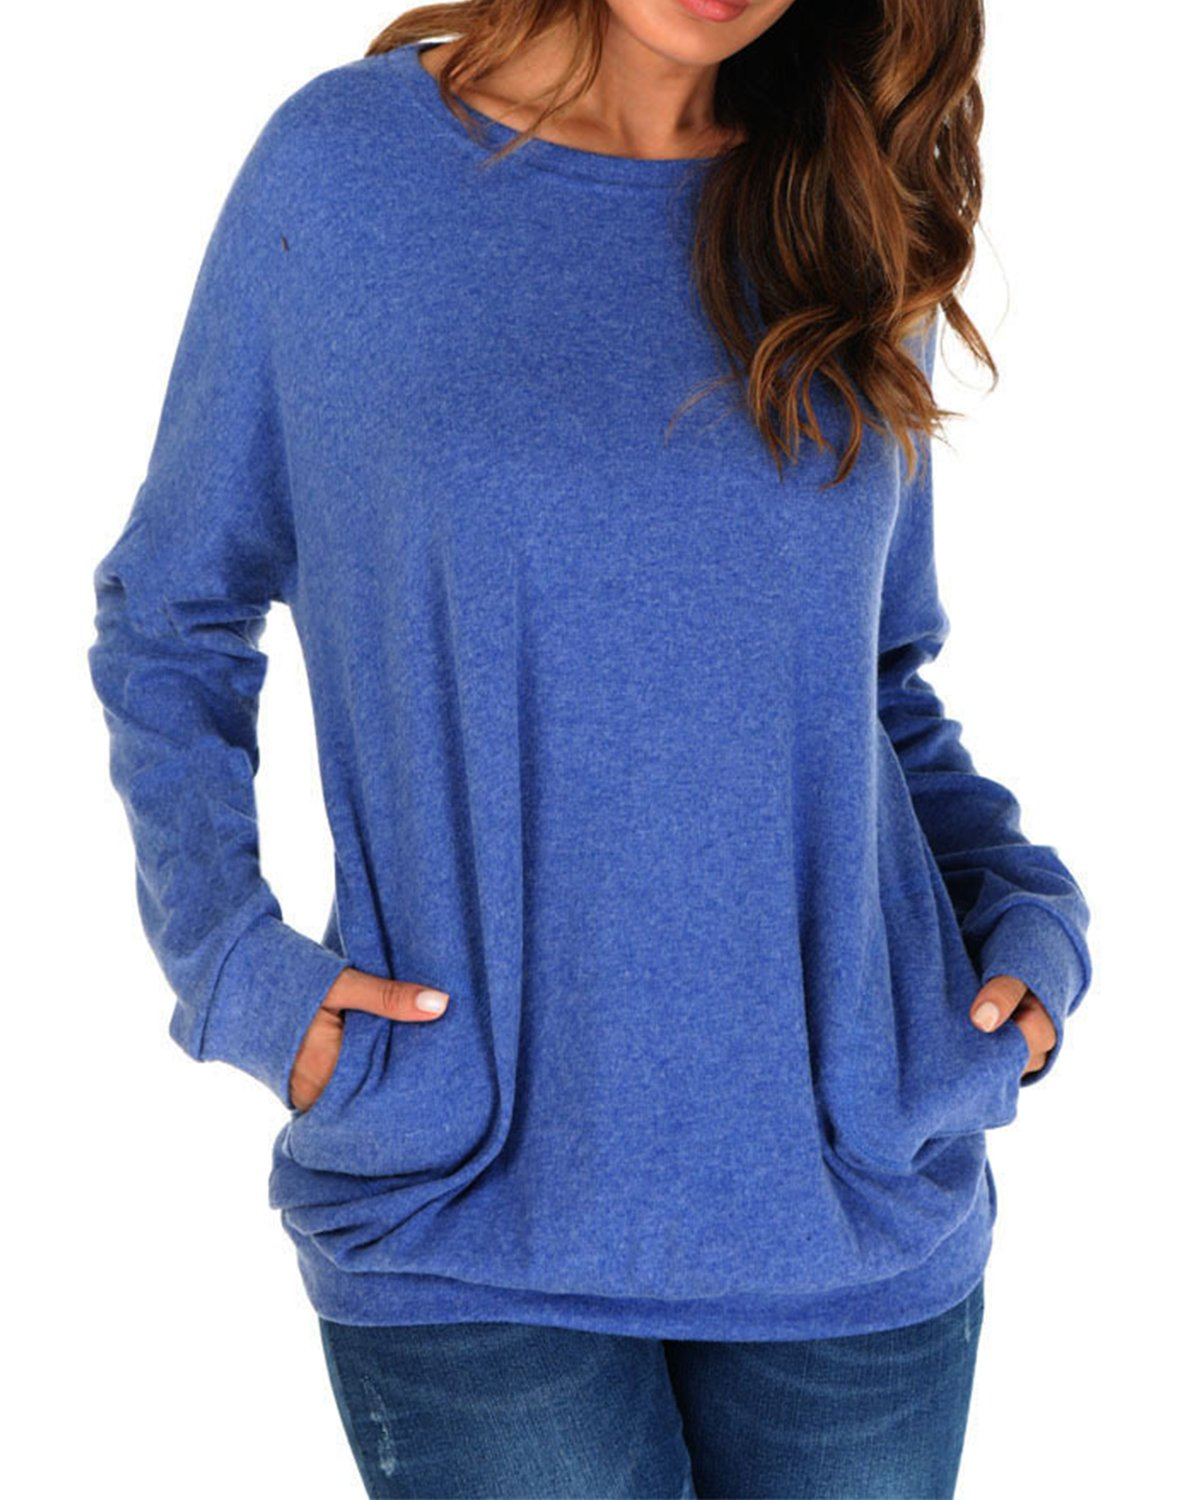 Women's Blouse Long Sleeve Tops Casual Sweater Shirt Loose T Shirt for Home, Travel, Weenkend(Royal Blue,Medium)